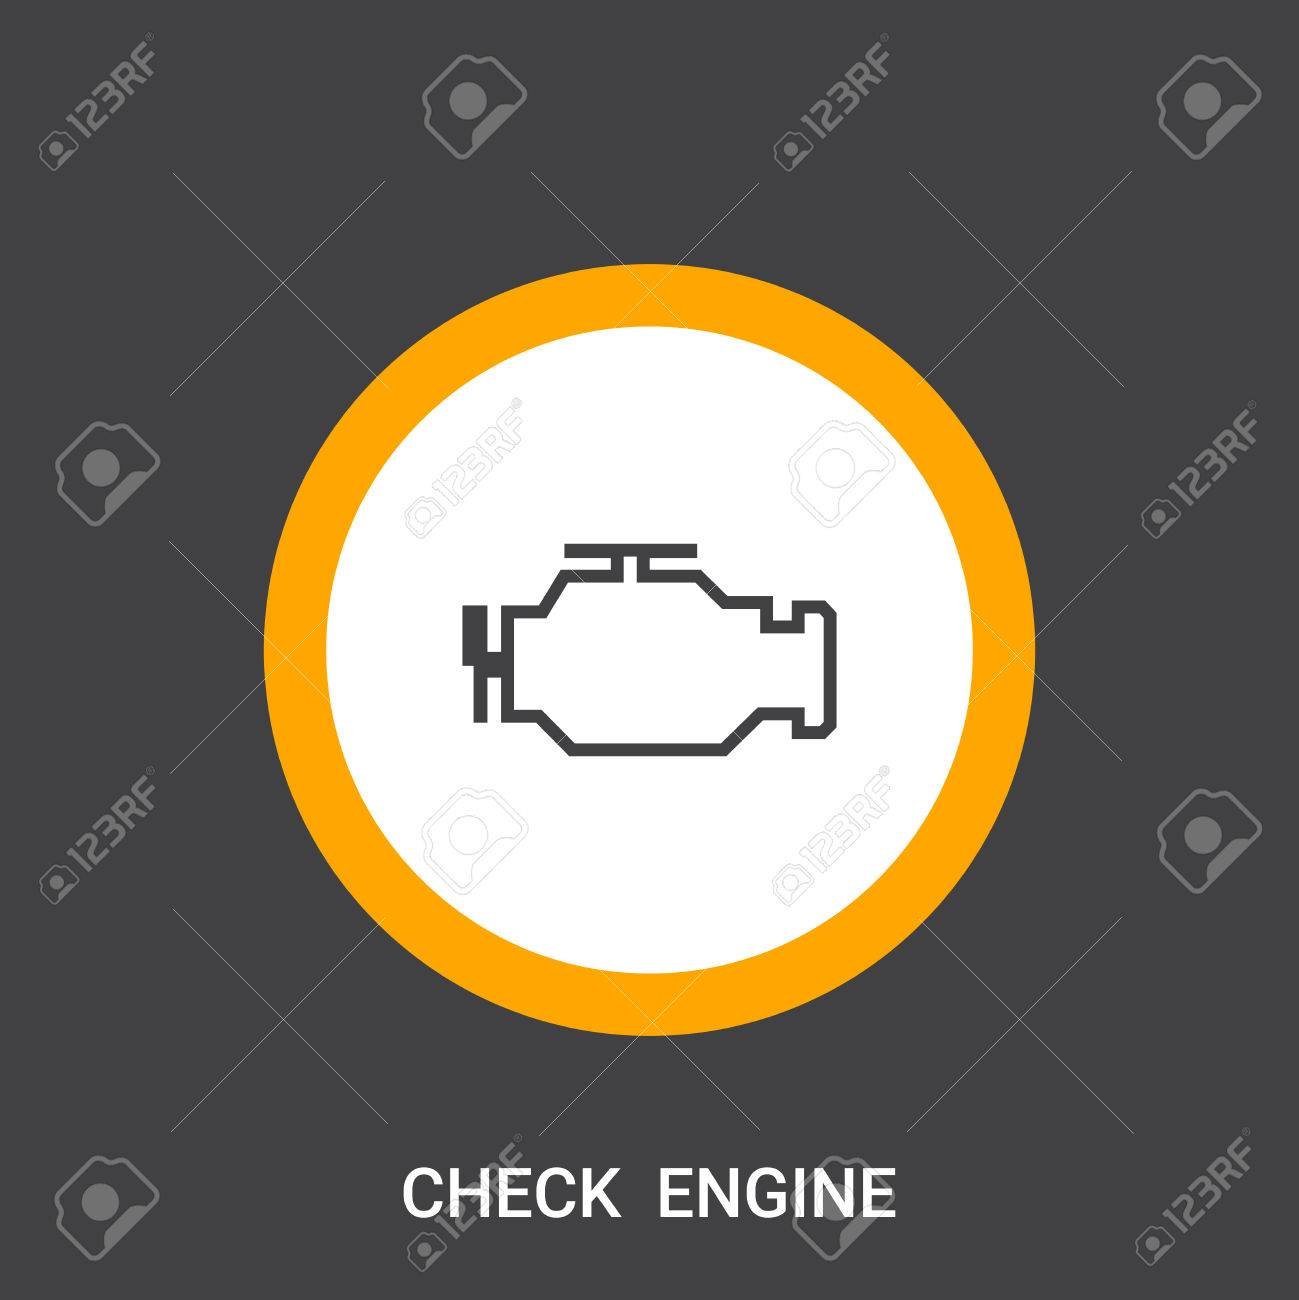 Vector check engine icon royalty free cliparts vectors and stock vector check engine icon stock vector 81782716 biocorpaavc Gallery